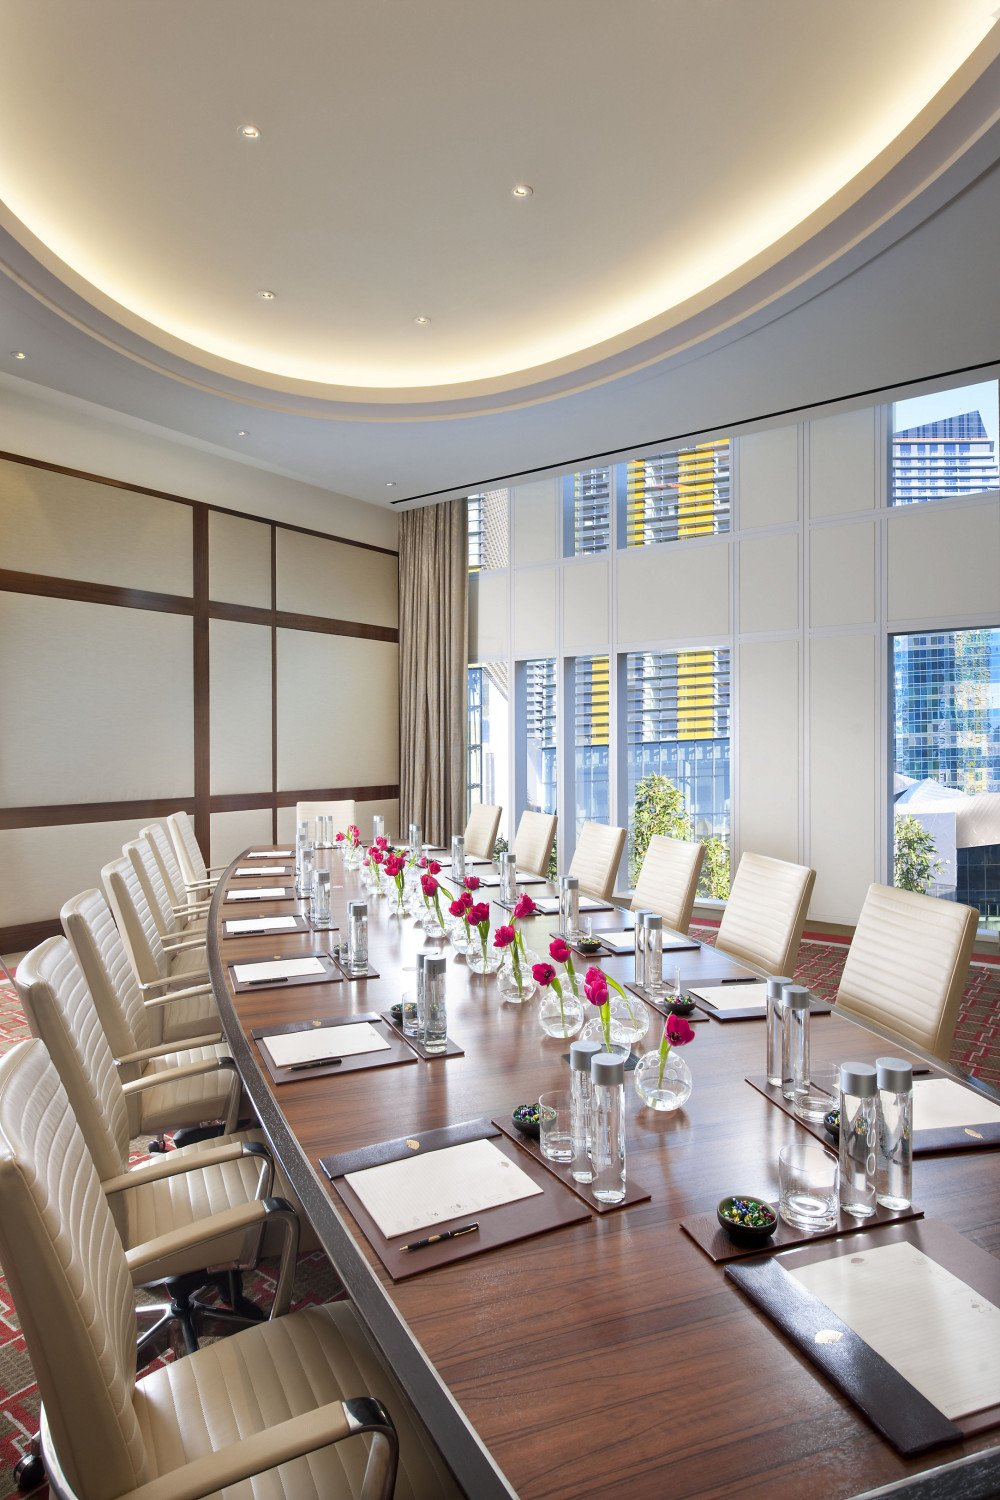 las-vegas-event-room-board-meeting-room-1